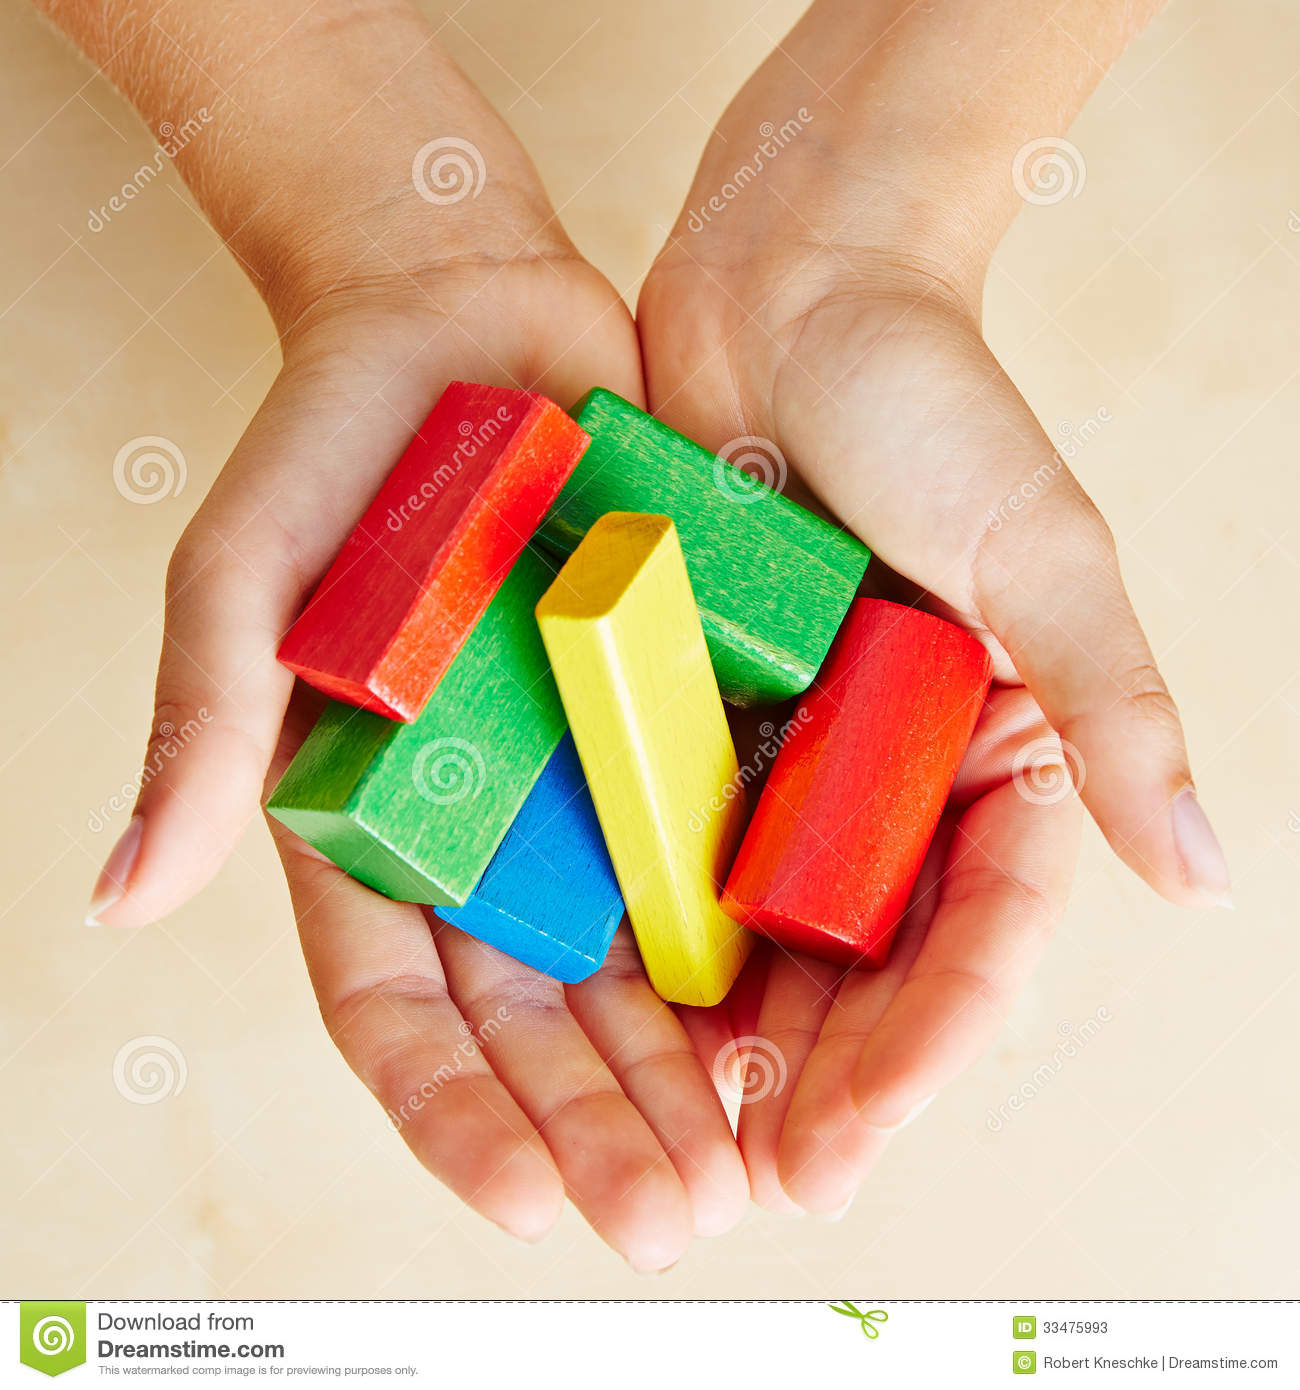 Hands from above holding building blocks